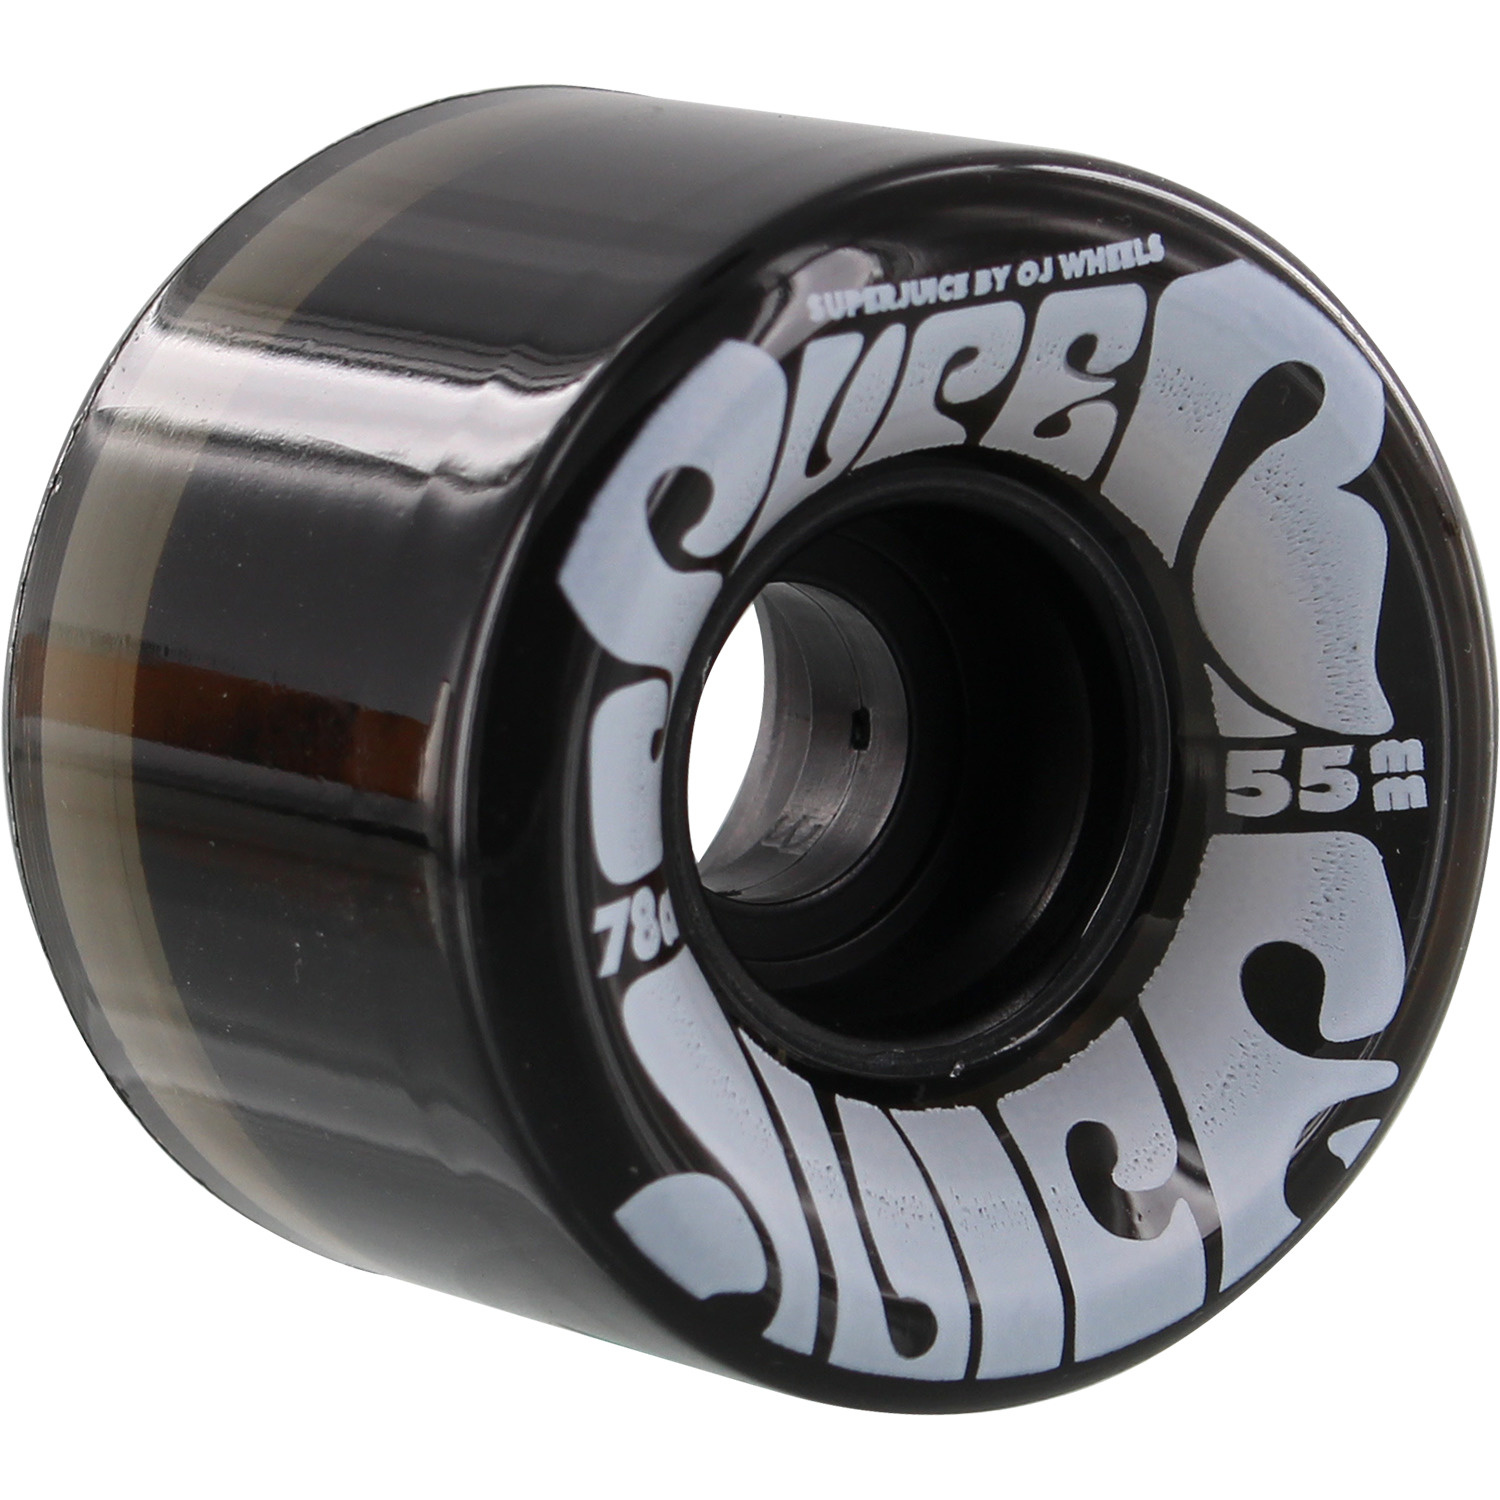 oj wheels 55mm mini super juice trans black 78a wheels